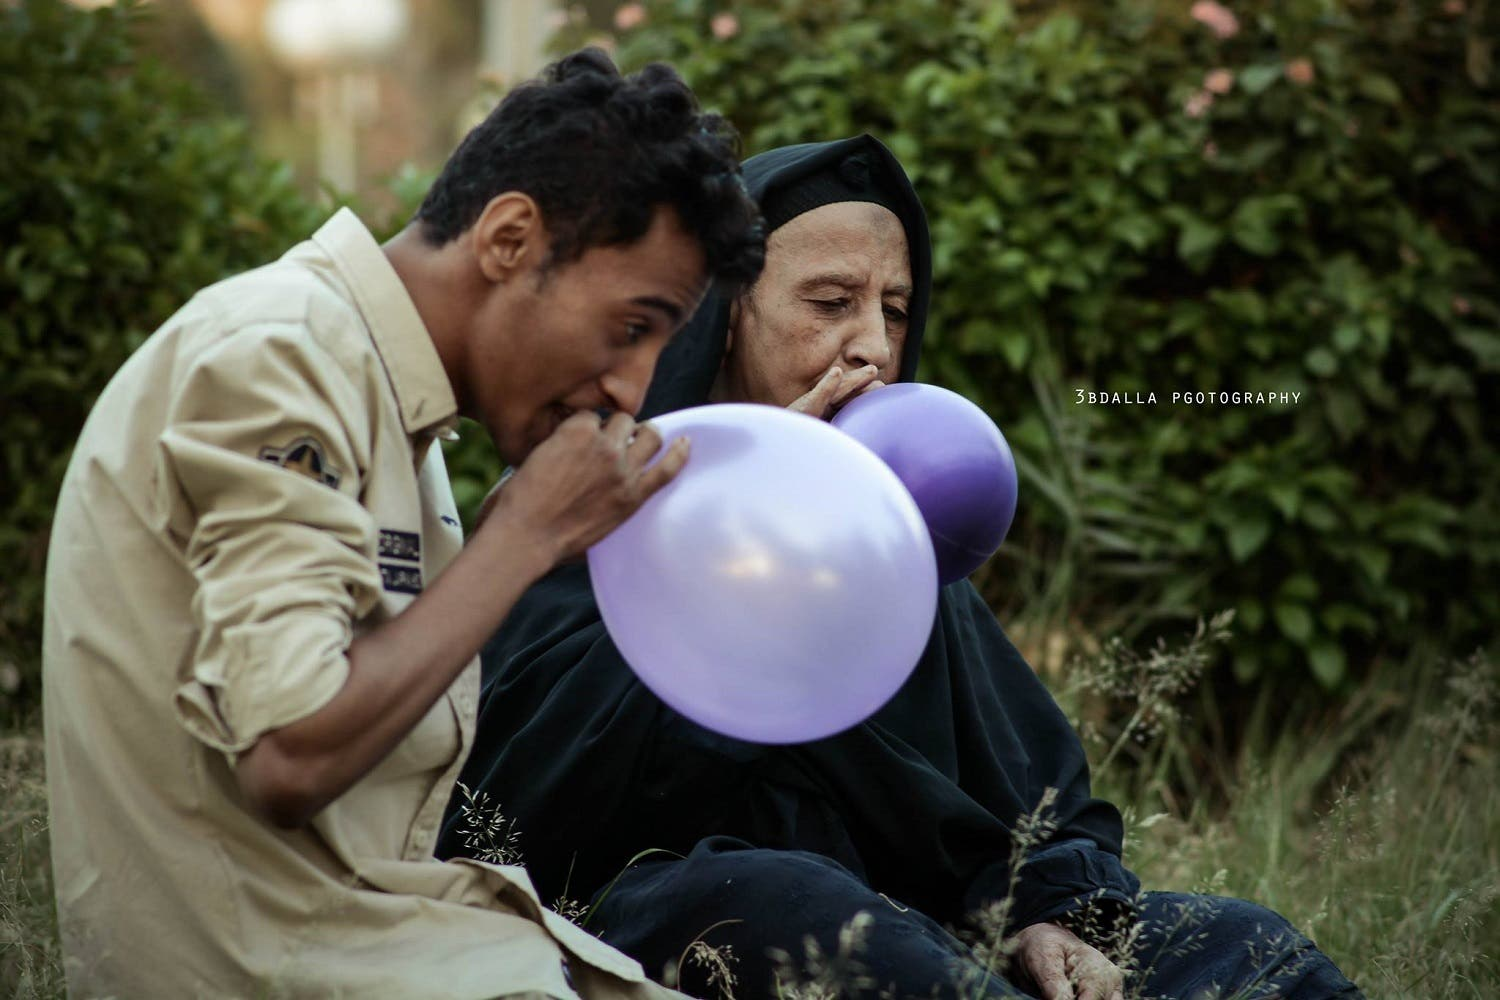 Egyptian grandson and grandmother blowing balloons together.